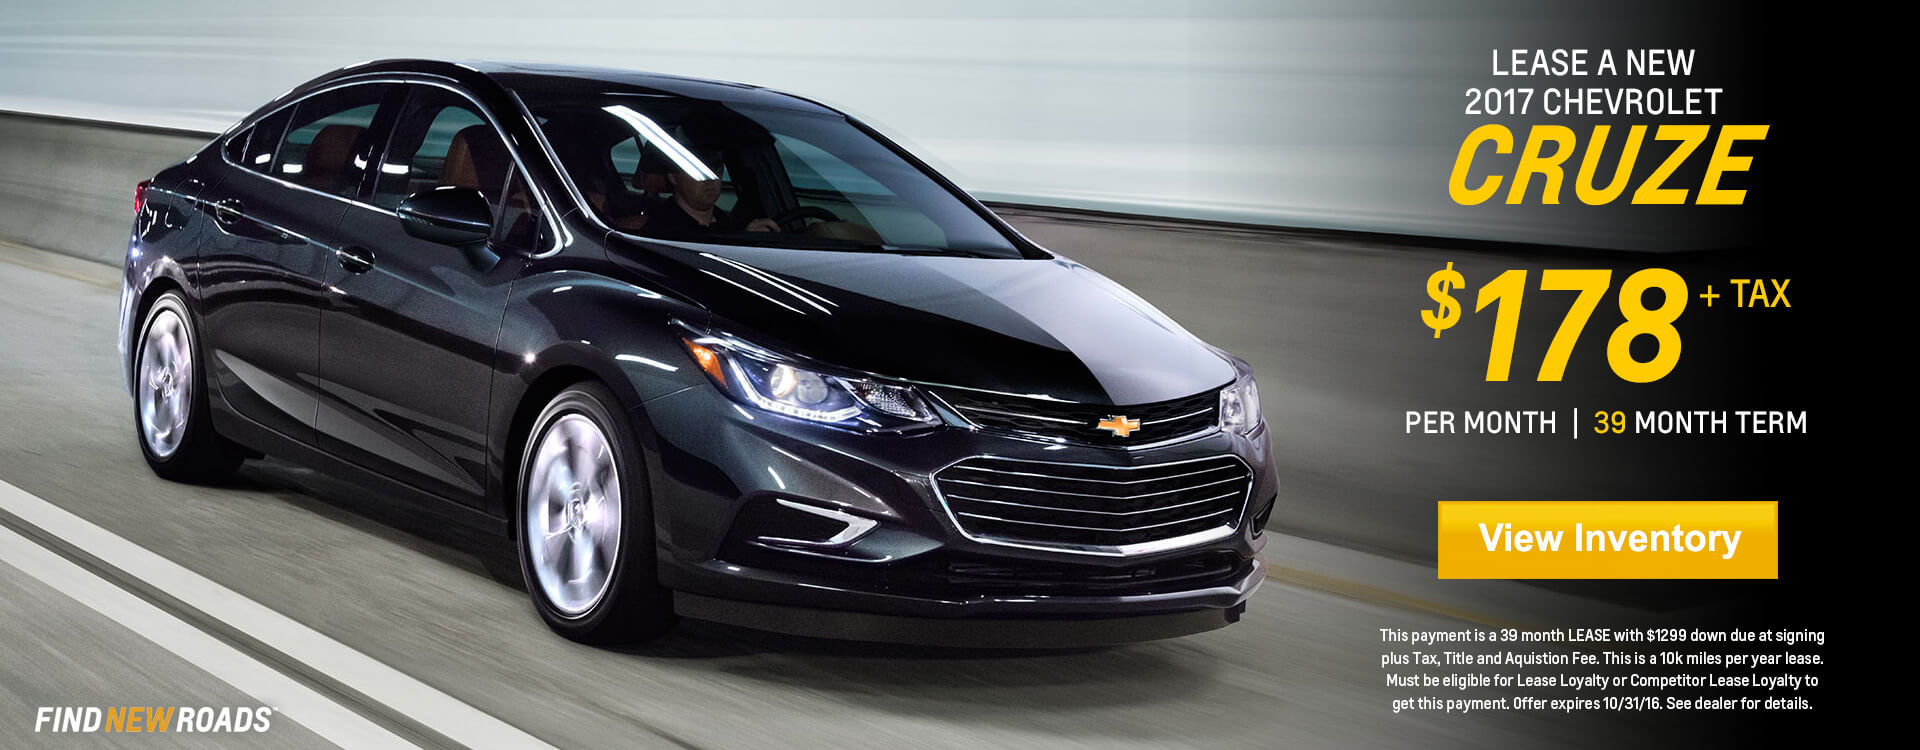 Cruze Lease Banner